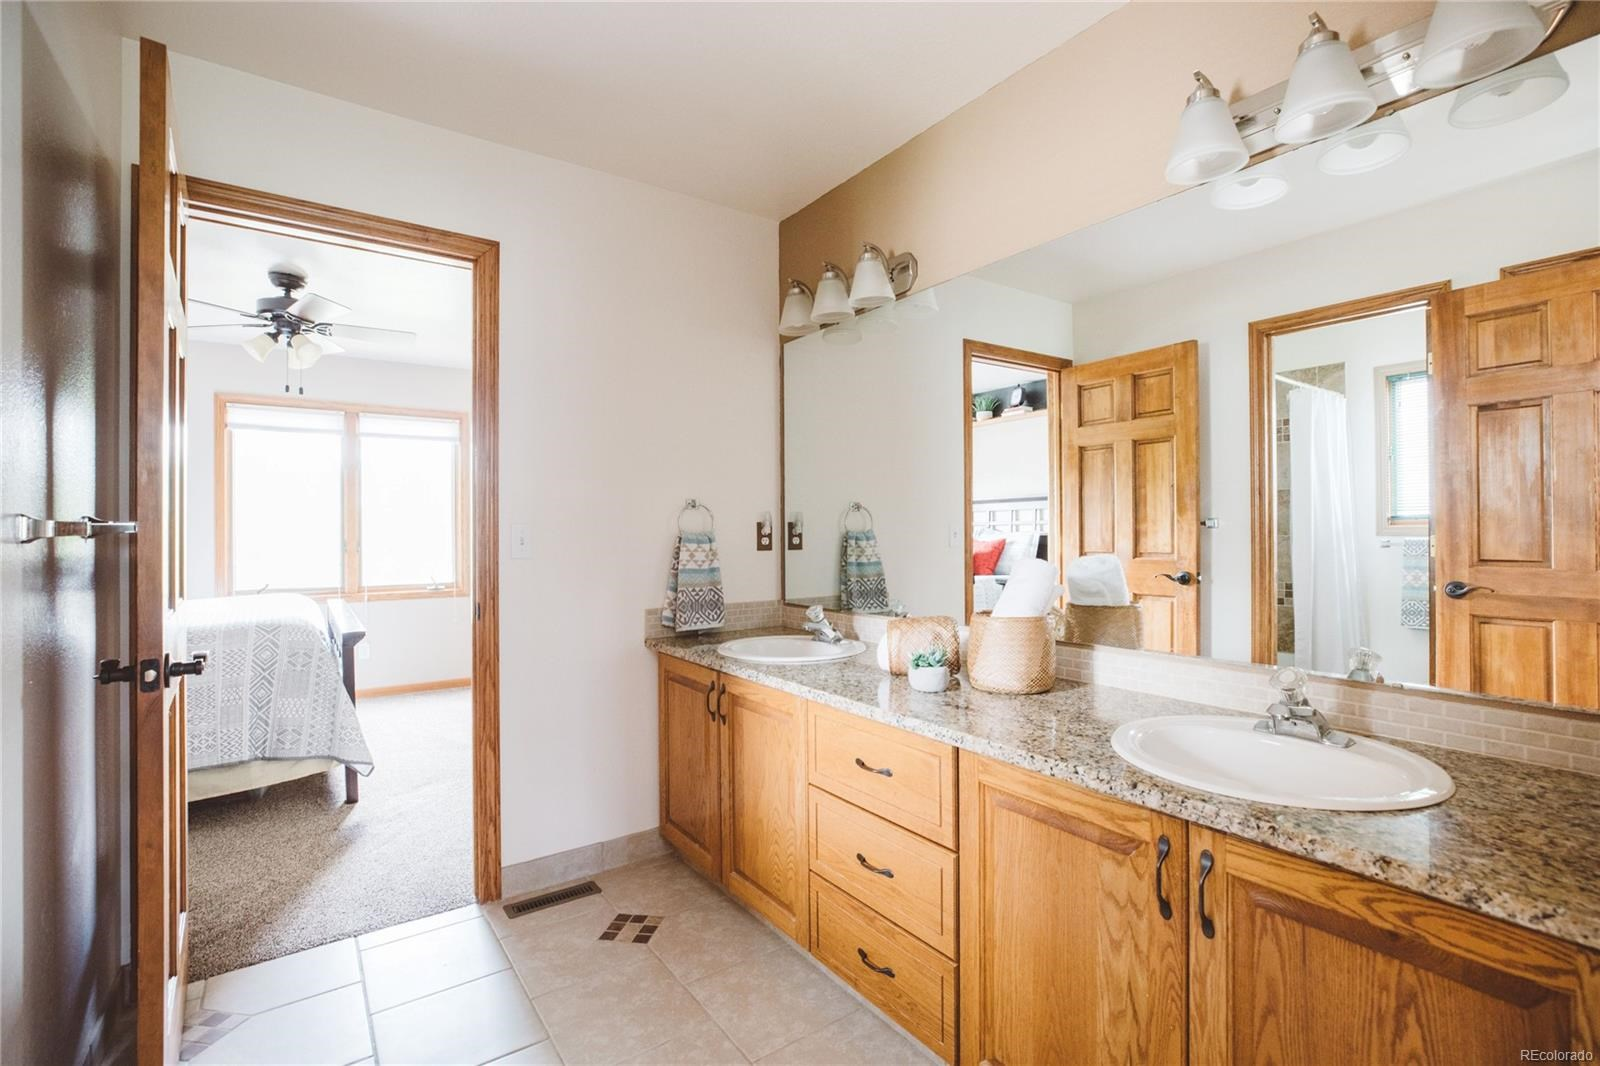 MLS# 4033949 - 23 - 3713 Ashmount Drive, Fort Collins, CO 80525